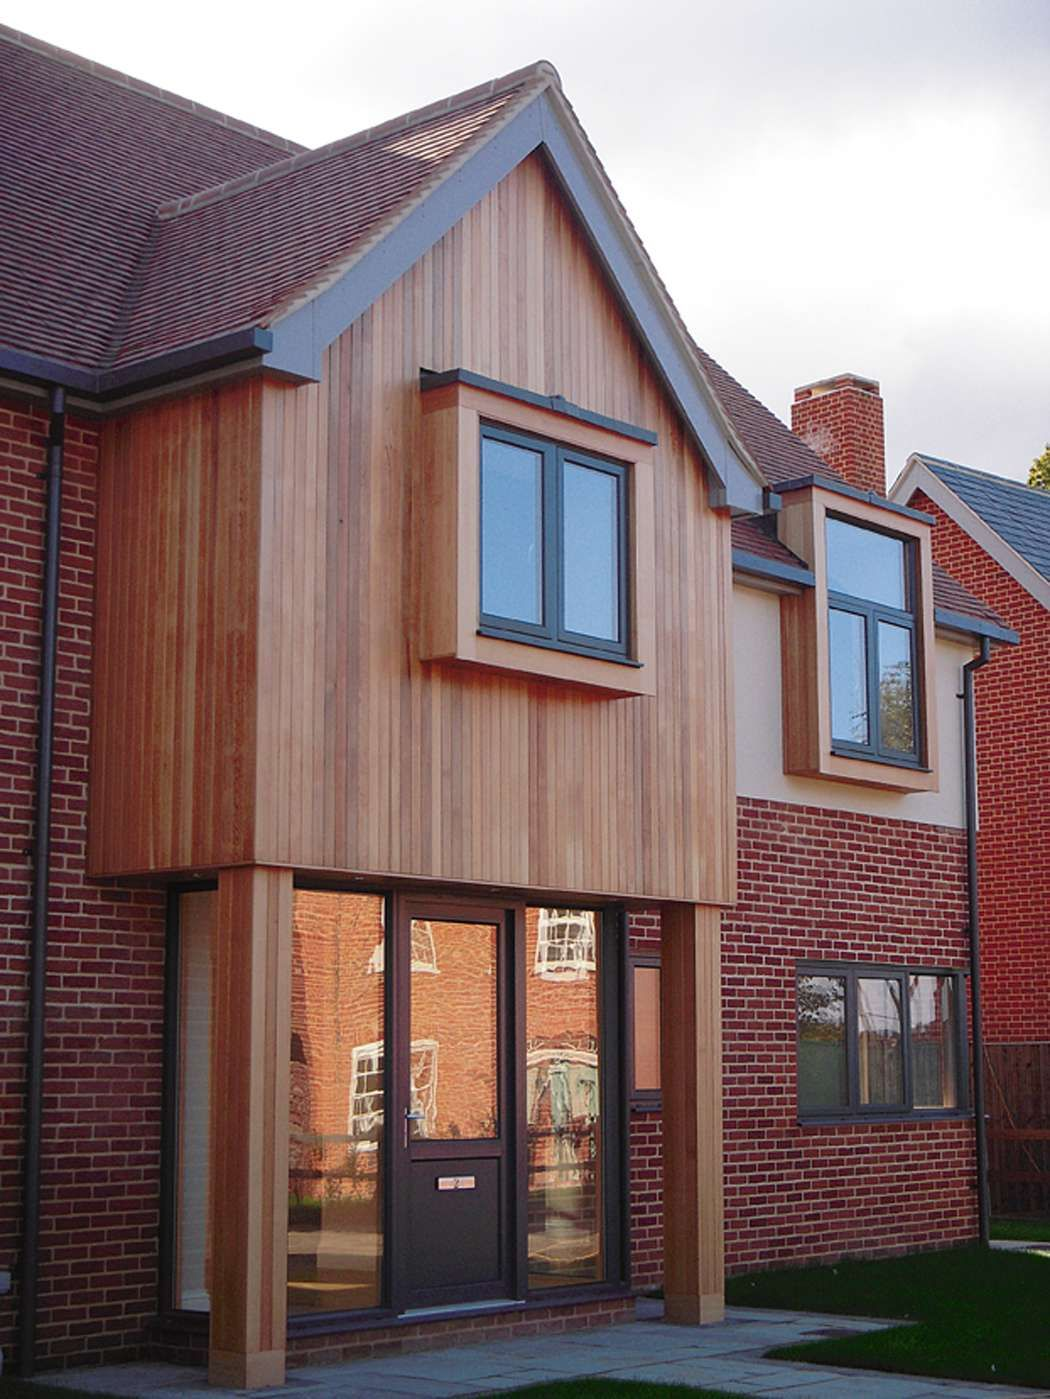 Western red cedar no 2 clear grade tongue groove from - Tongue and groove interior cladding ...